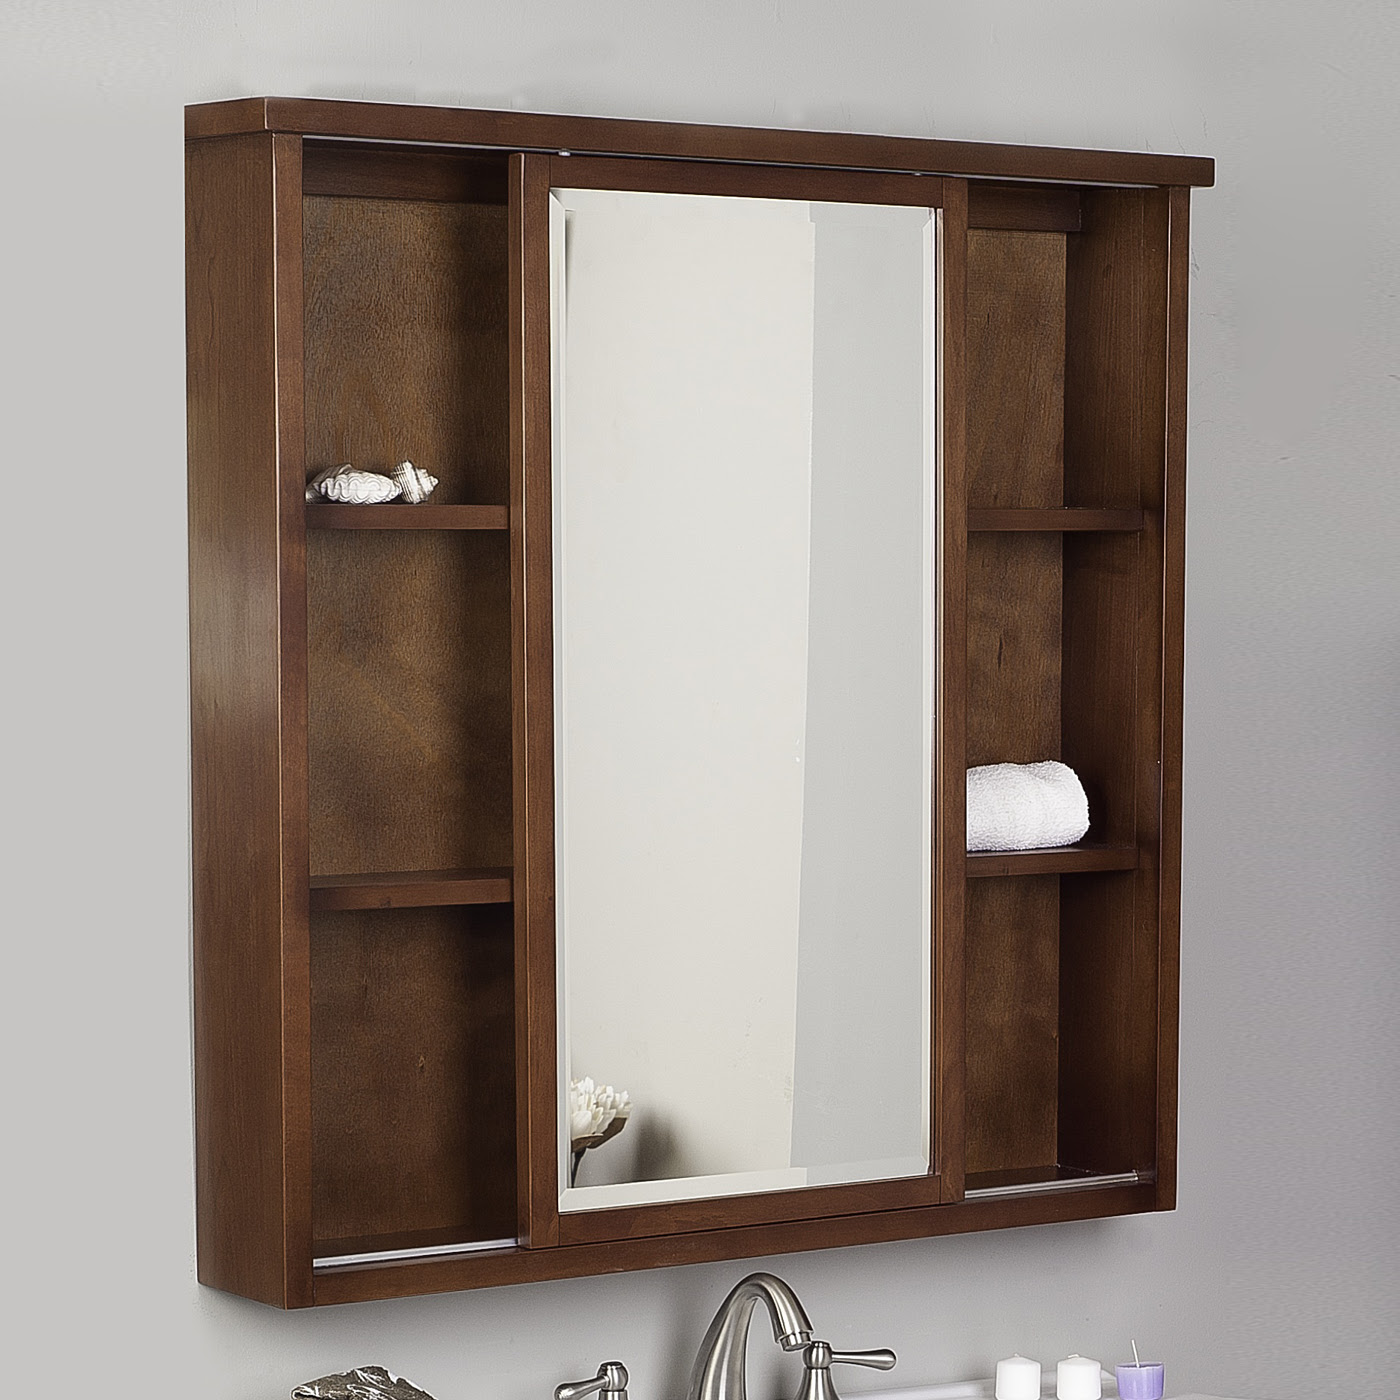 Lowes Medicine Cabinets With Mirrors Home Cabinets Design